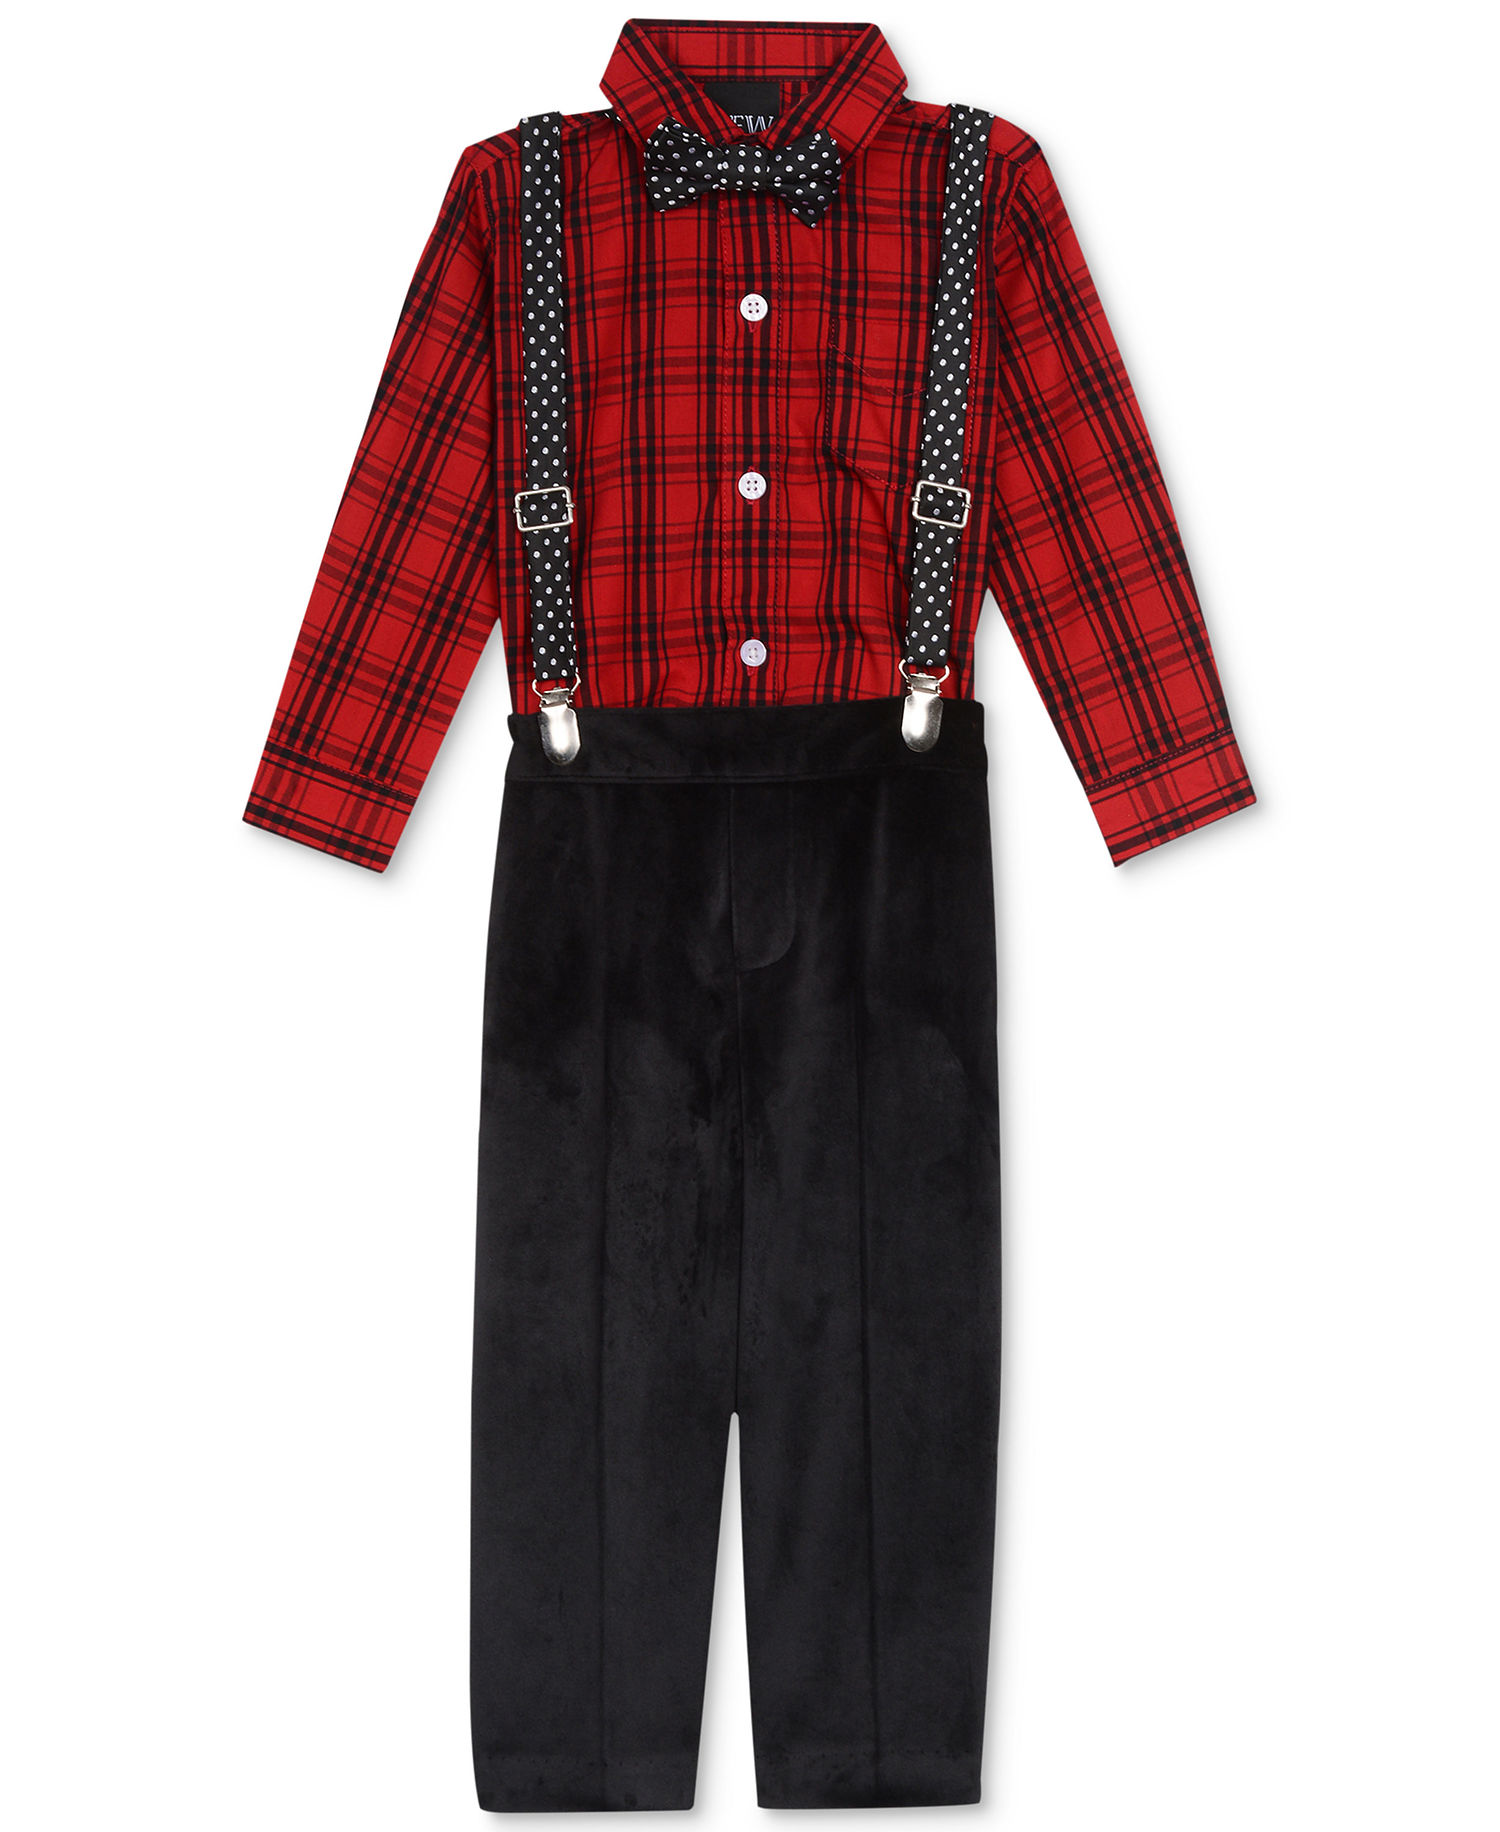 bbeb1b0ab Details about Nautica Baby Boys 4-Pc Bowtie, Suspenders, Top & Bottom Set  (12-18 Months, Red)